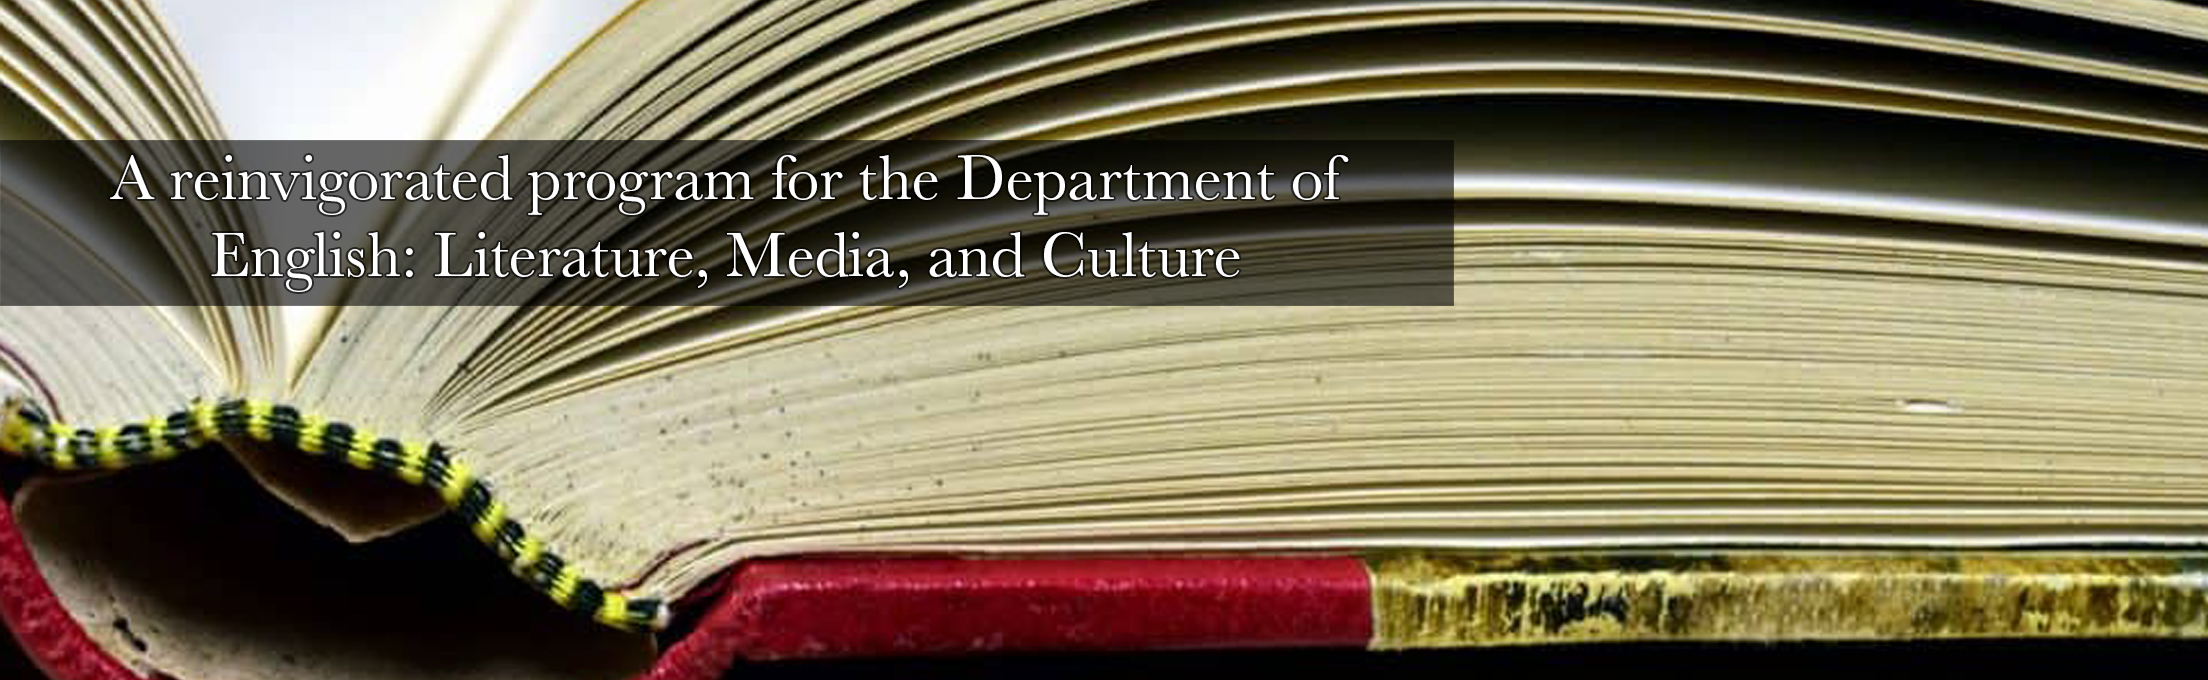 A reinvigorated program for the Department of English: Literature, Media, and Culture